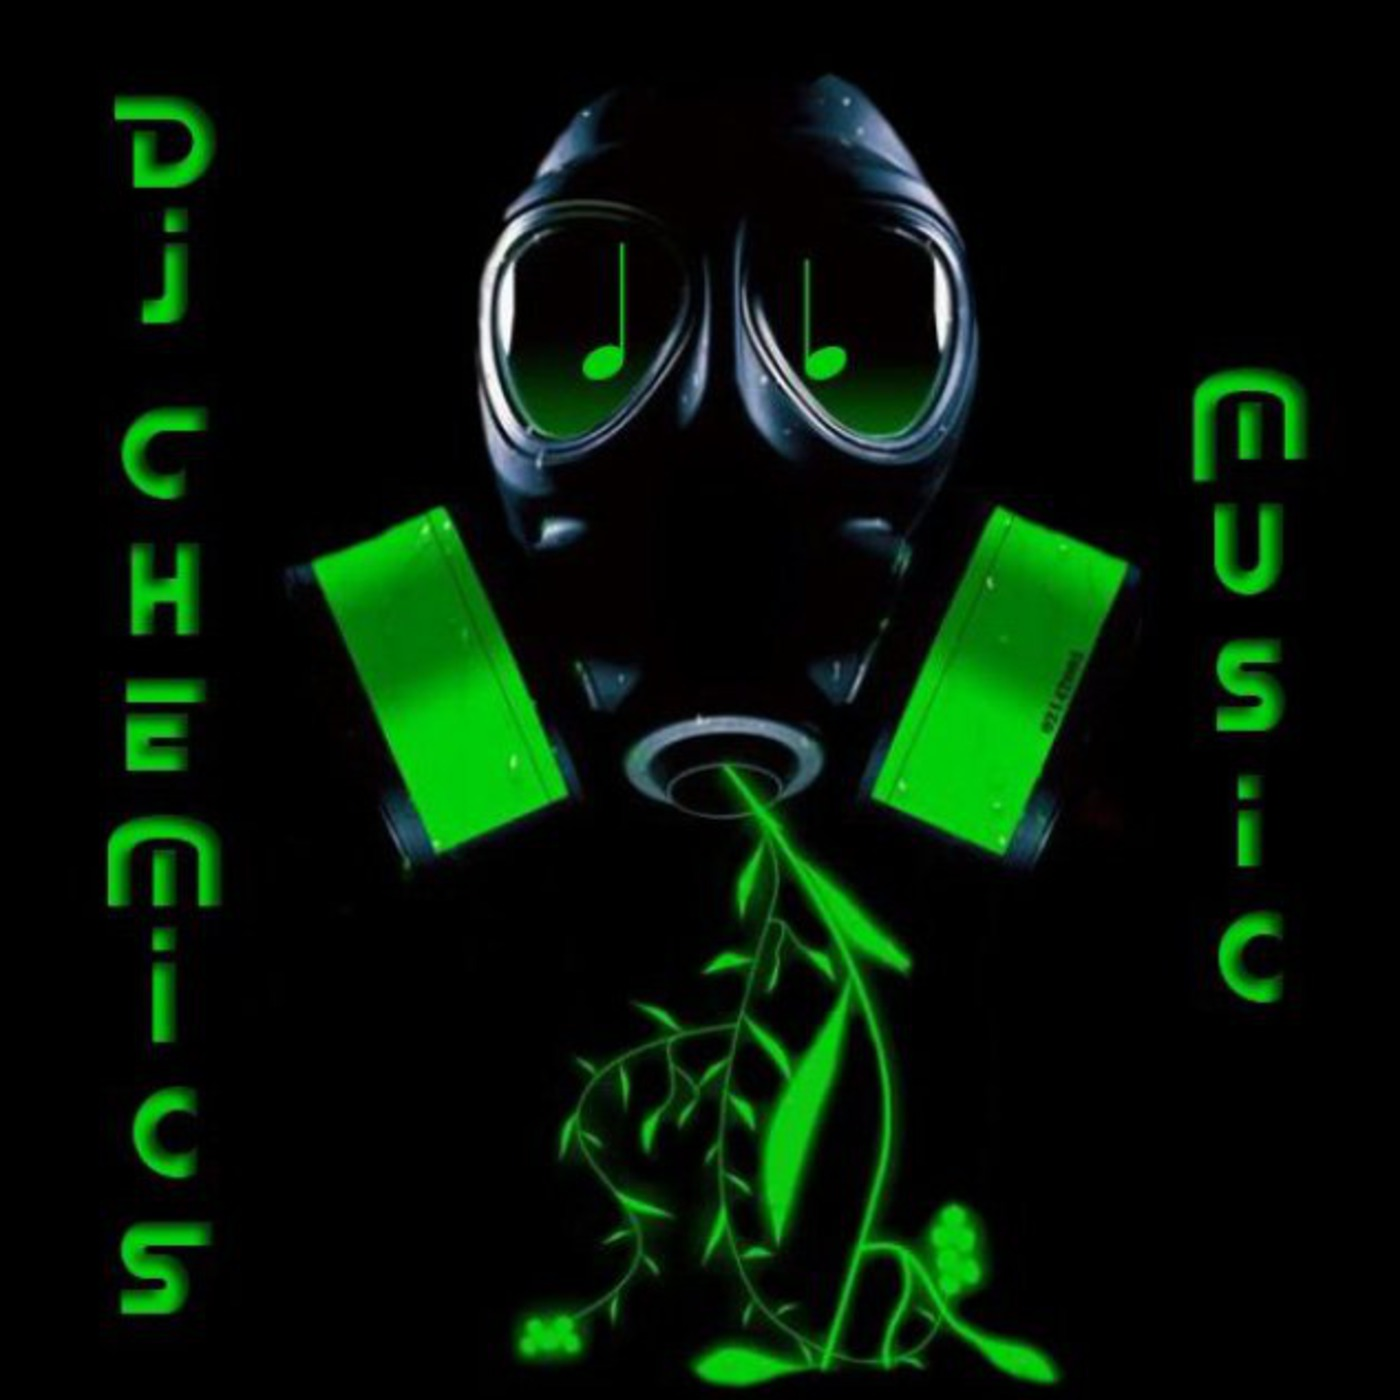 Dj Chemics' Podcast